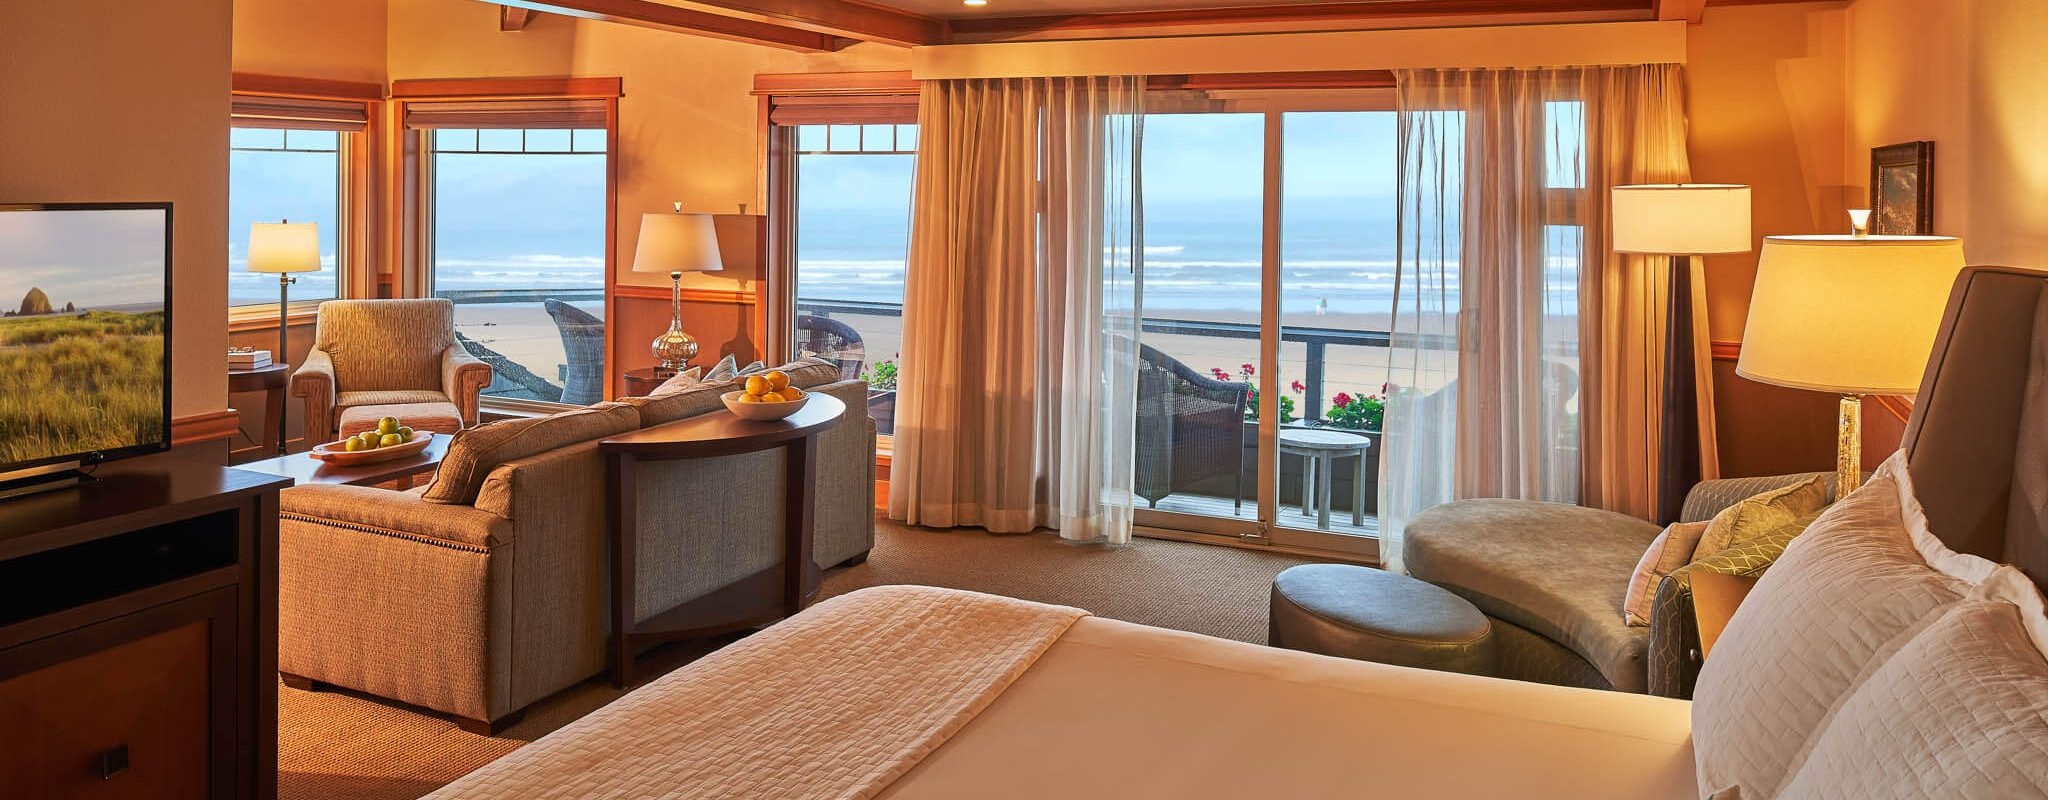 Oceanfront views from your bed